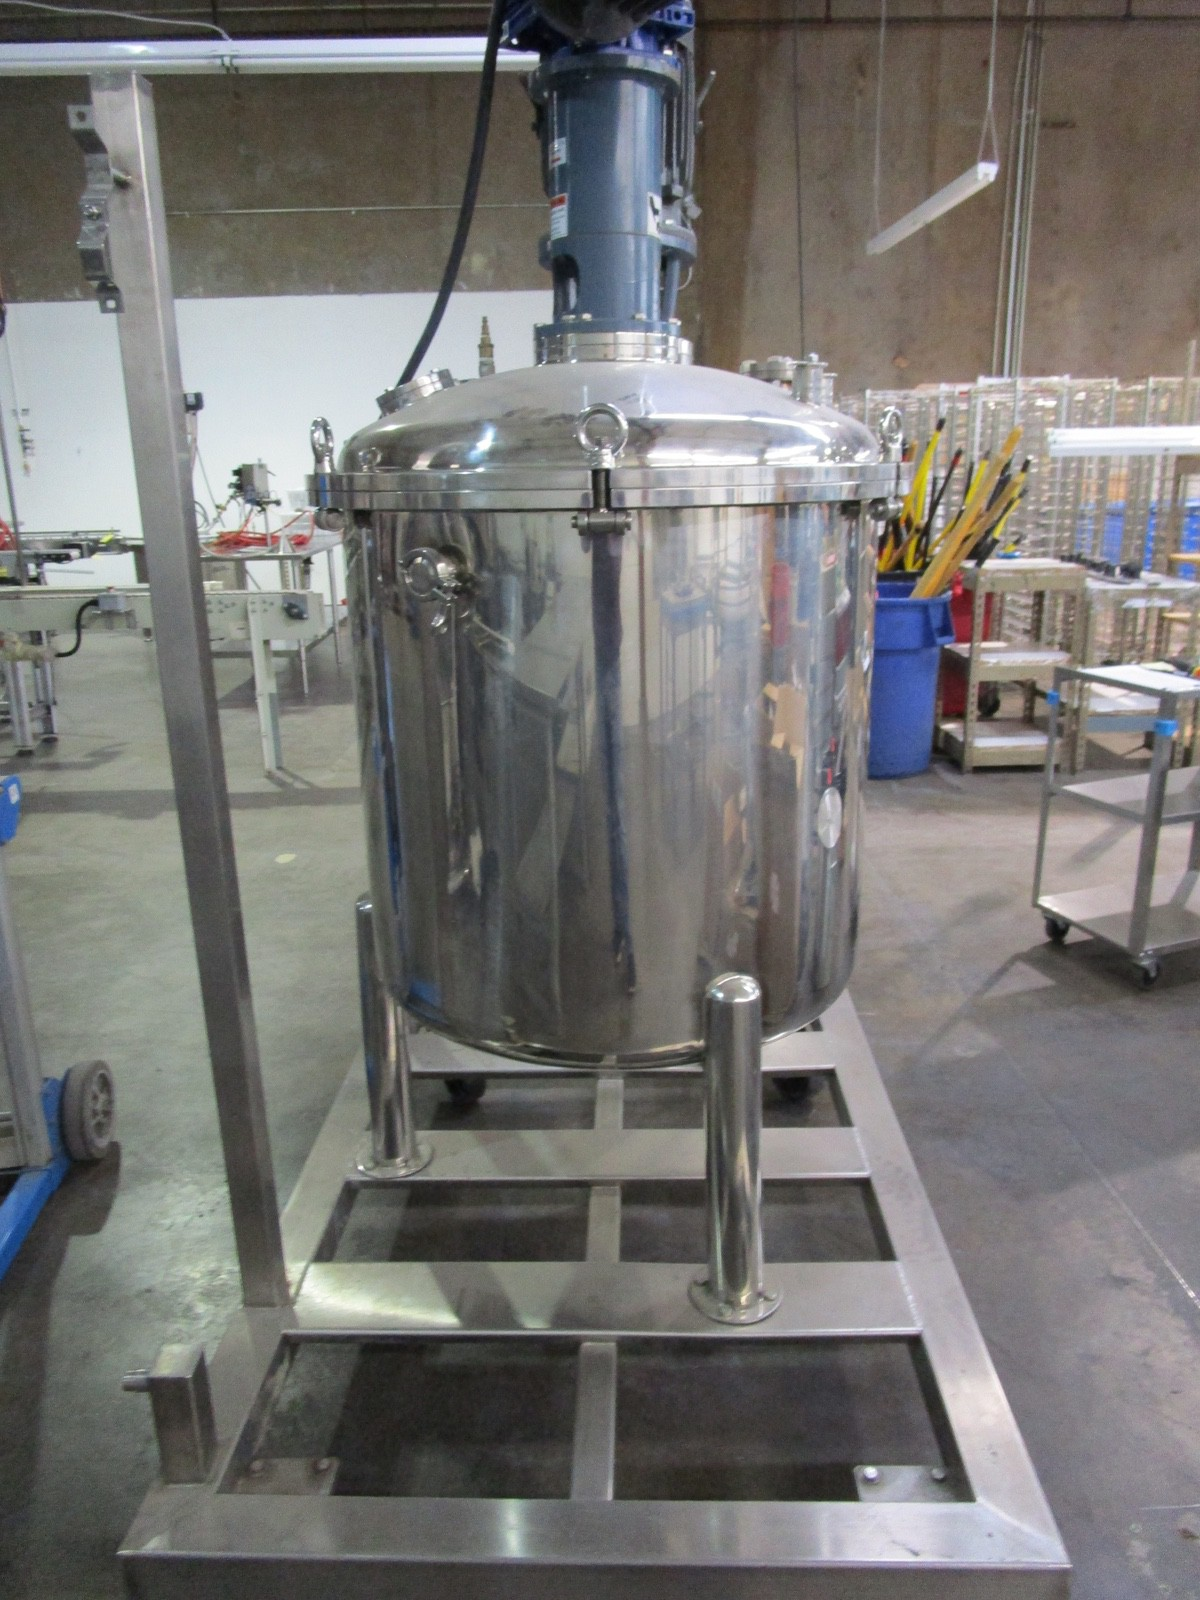 Approx. 75 Gallon Stainless Steel High Polish Twin Agitated Vessel, (2) Mixer/Agitat | Rig Fee: $300 - Image 4 of 10